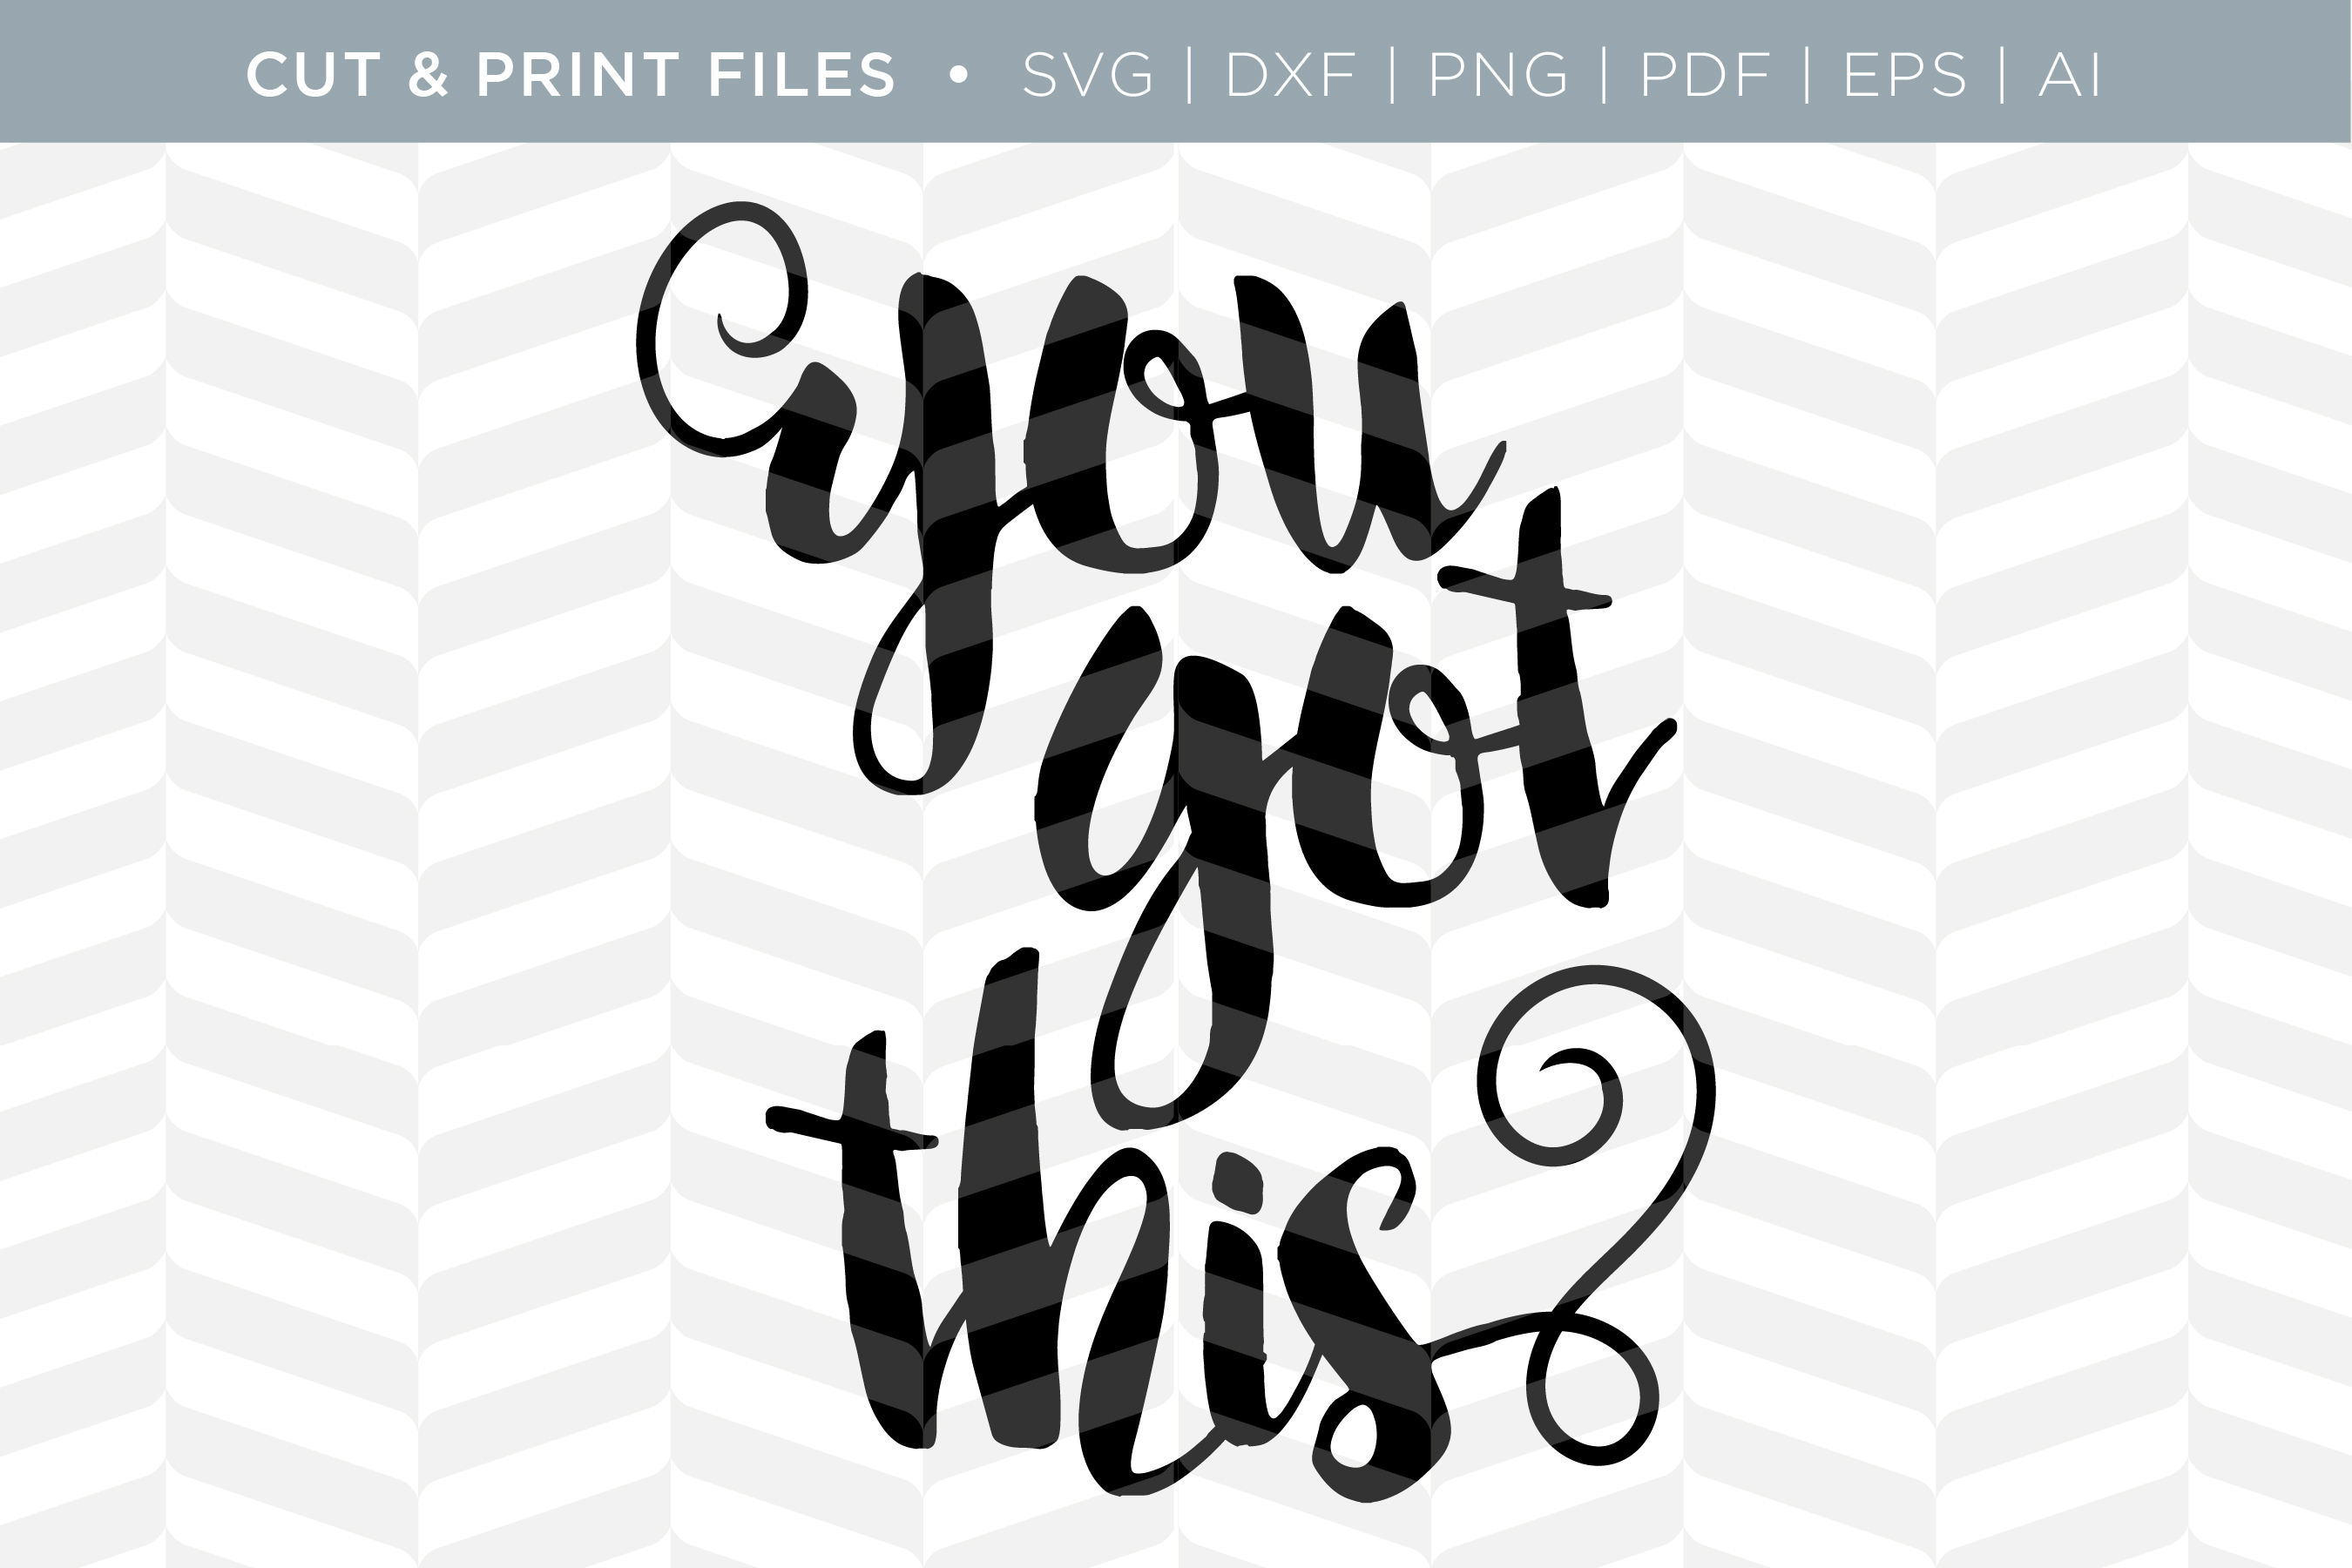 You Got This - DXF/SVG/PNG/PDF Cut & Print Files example image 2